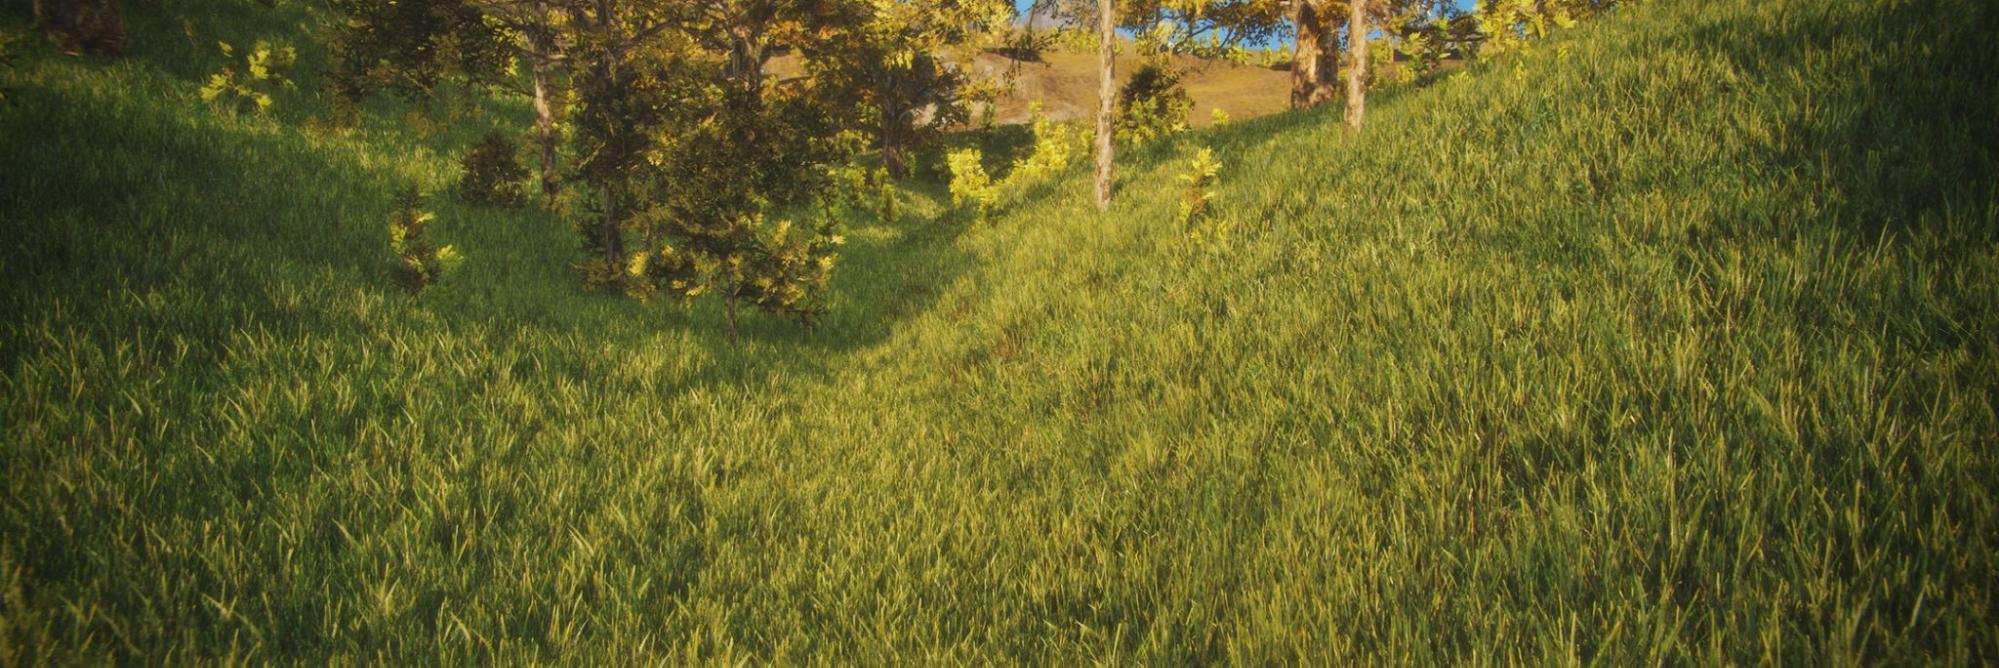 Grassy field made with Unity